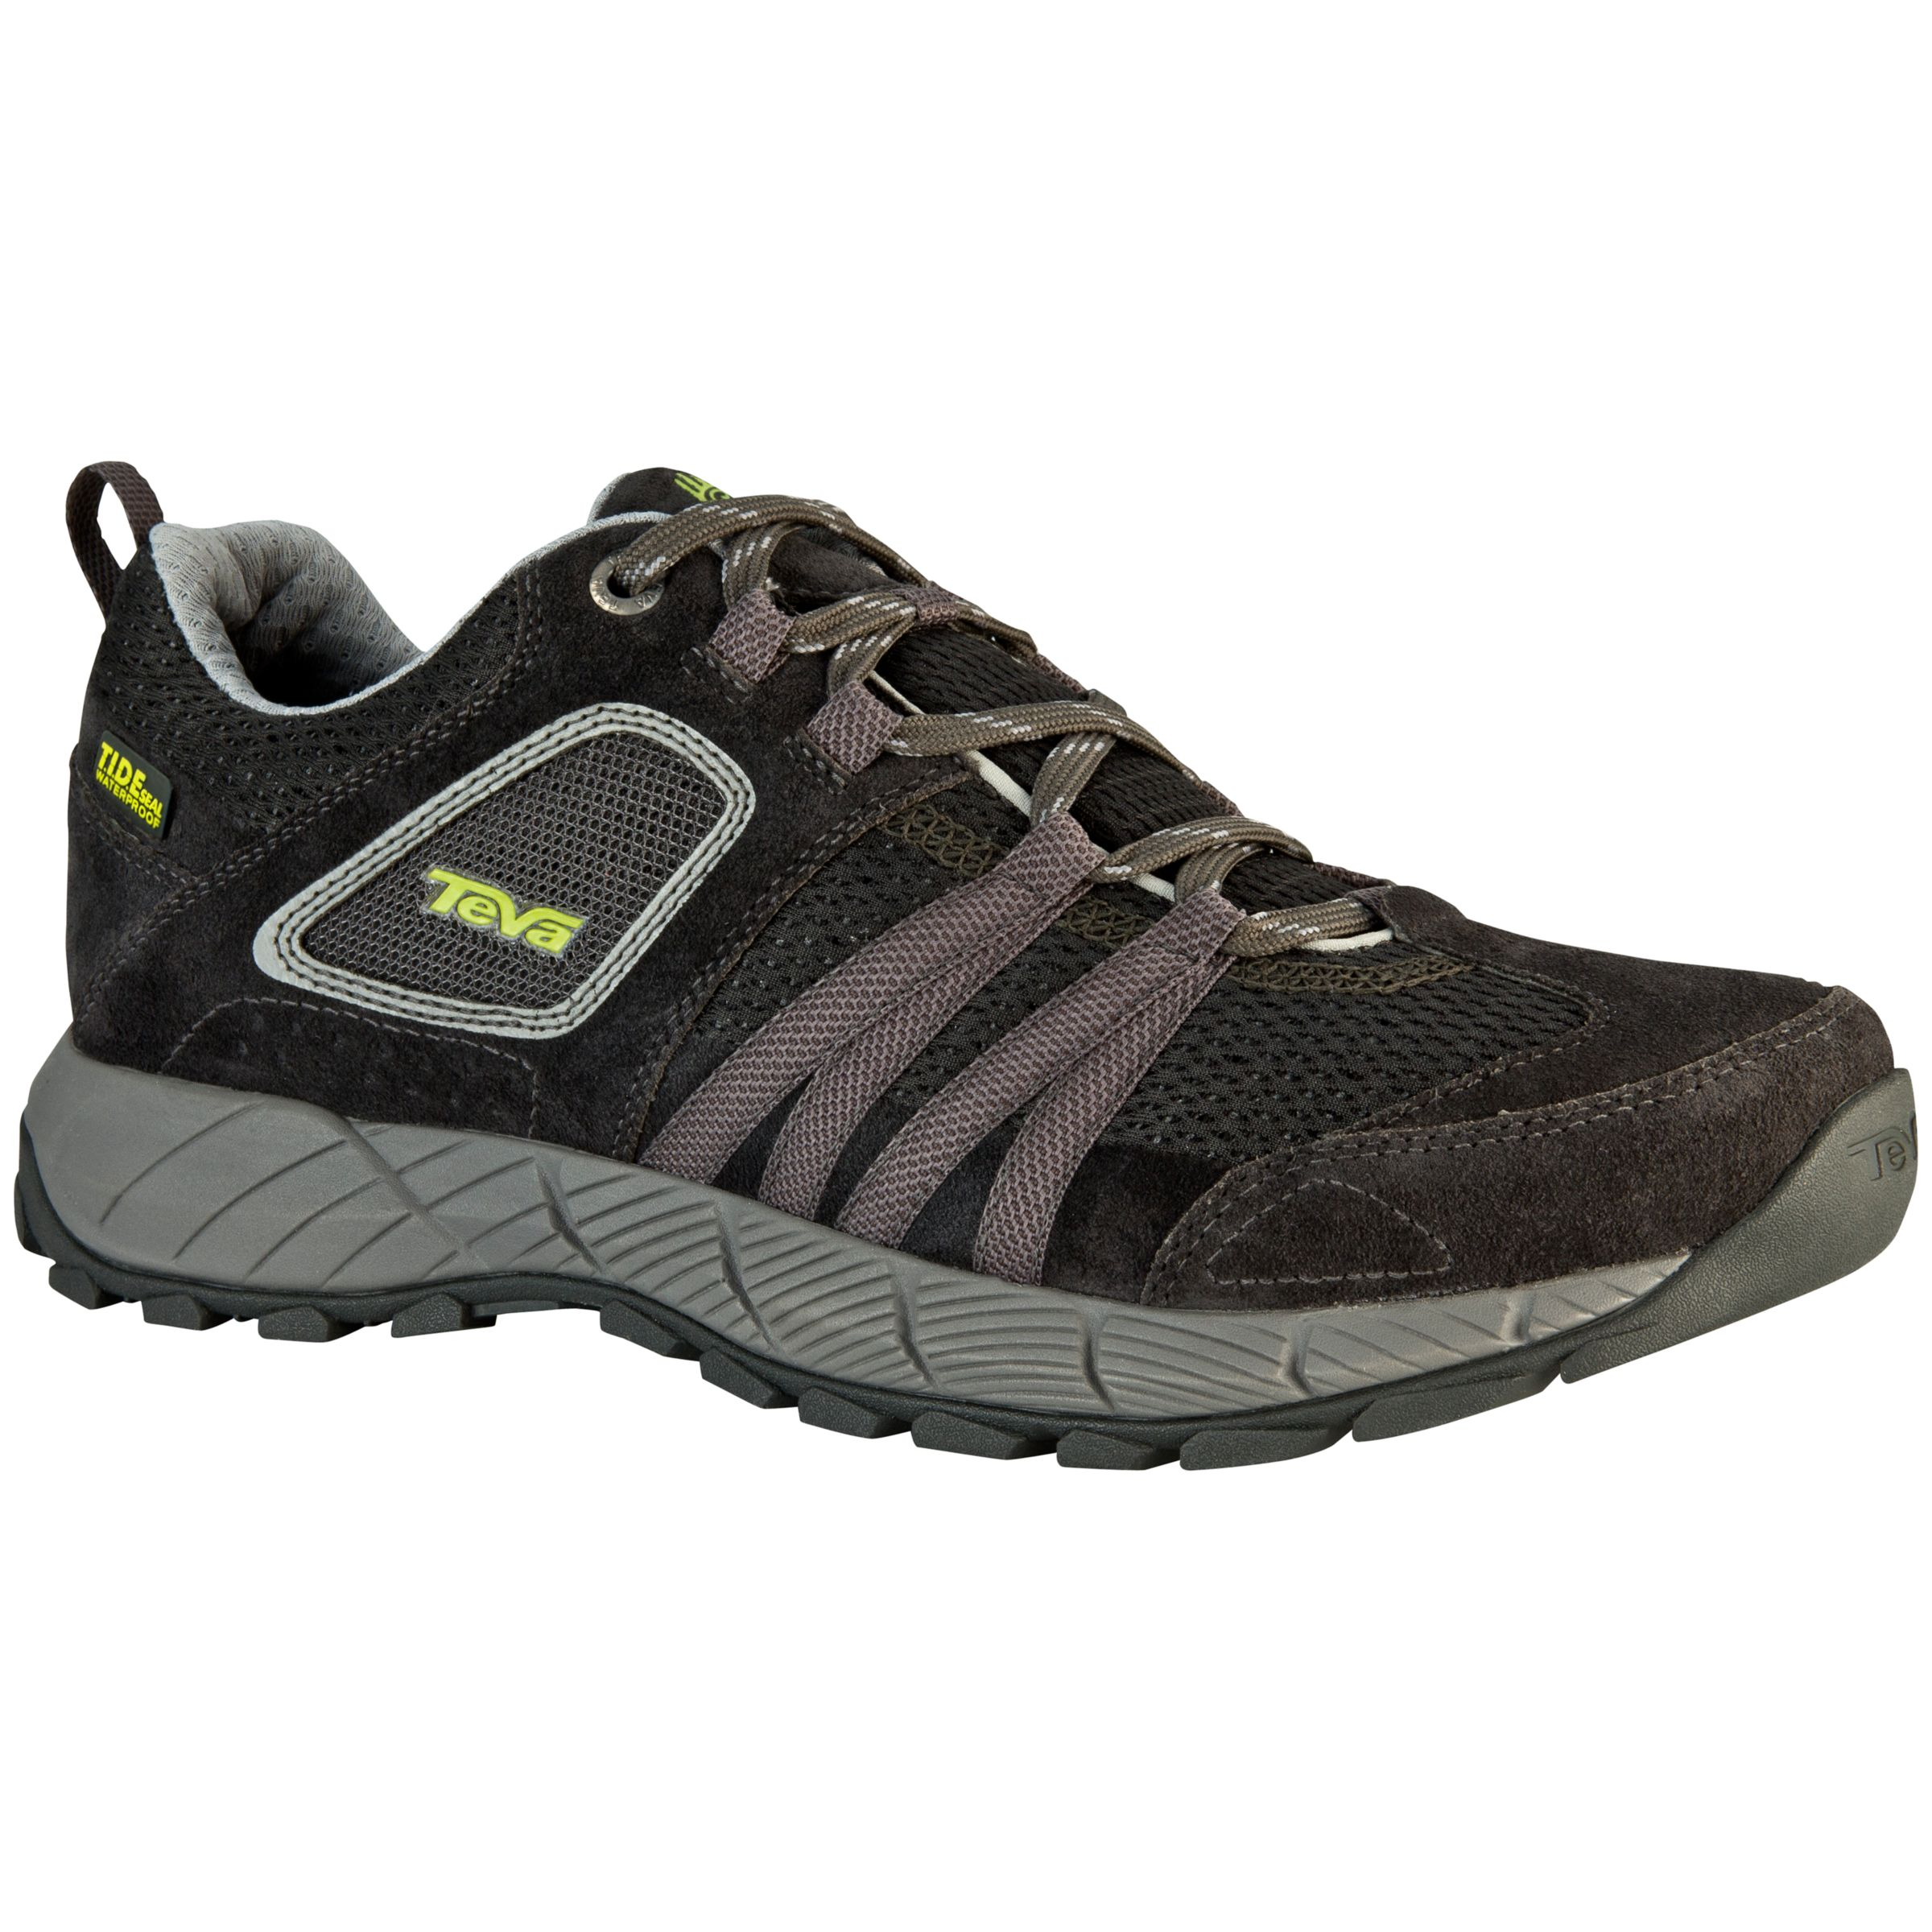 Teva Wapta Men's Waterproof Shoes, Black